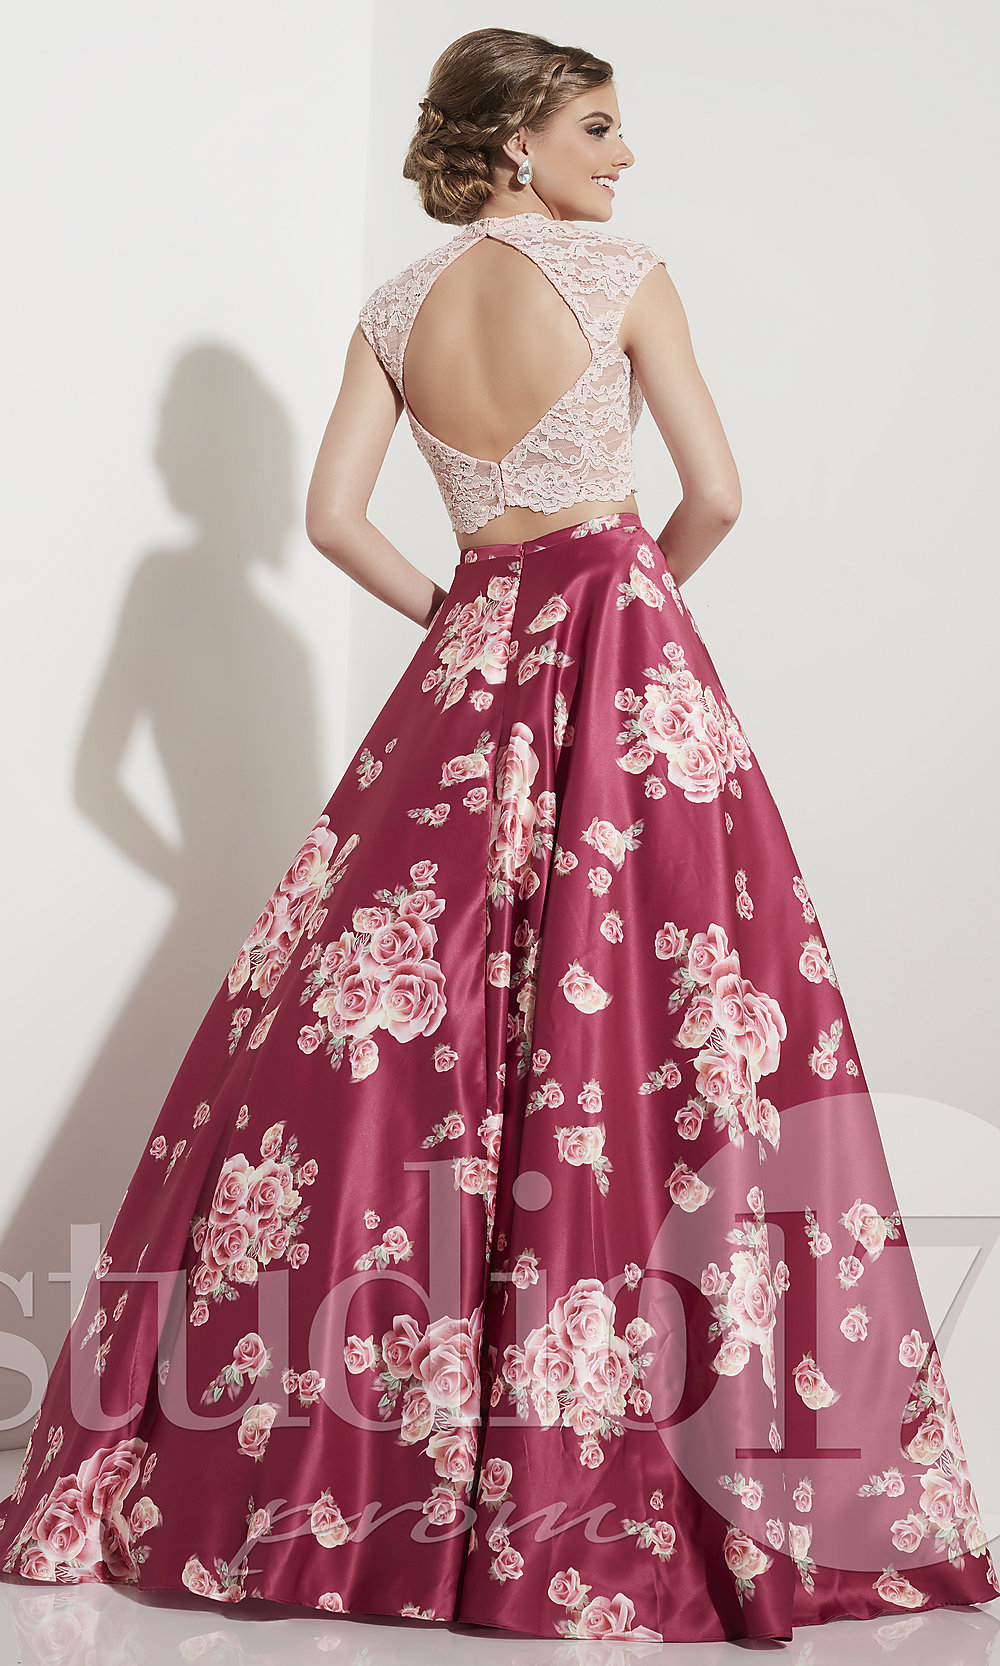 Rose Pink Prom Dresses - Plus Size Tops